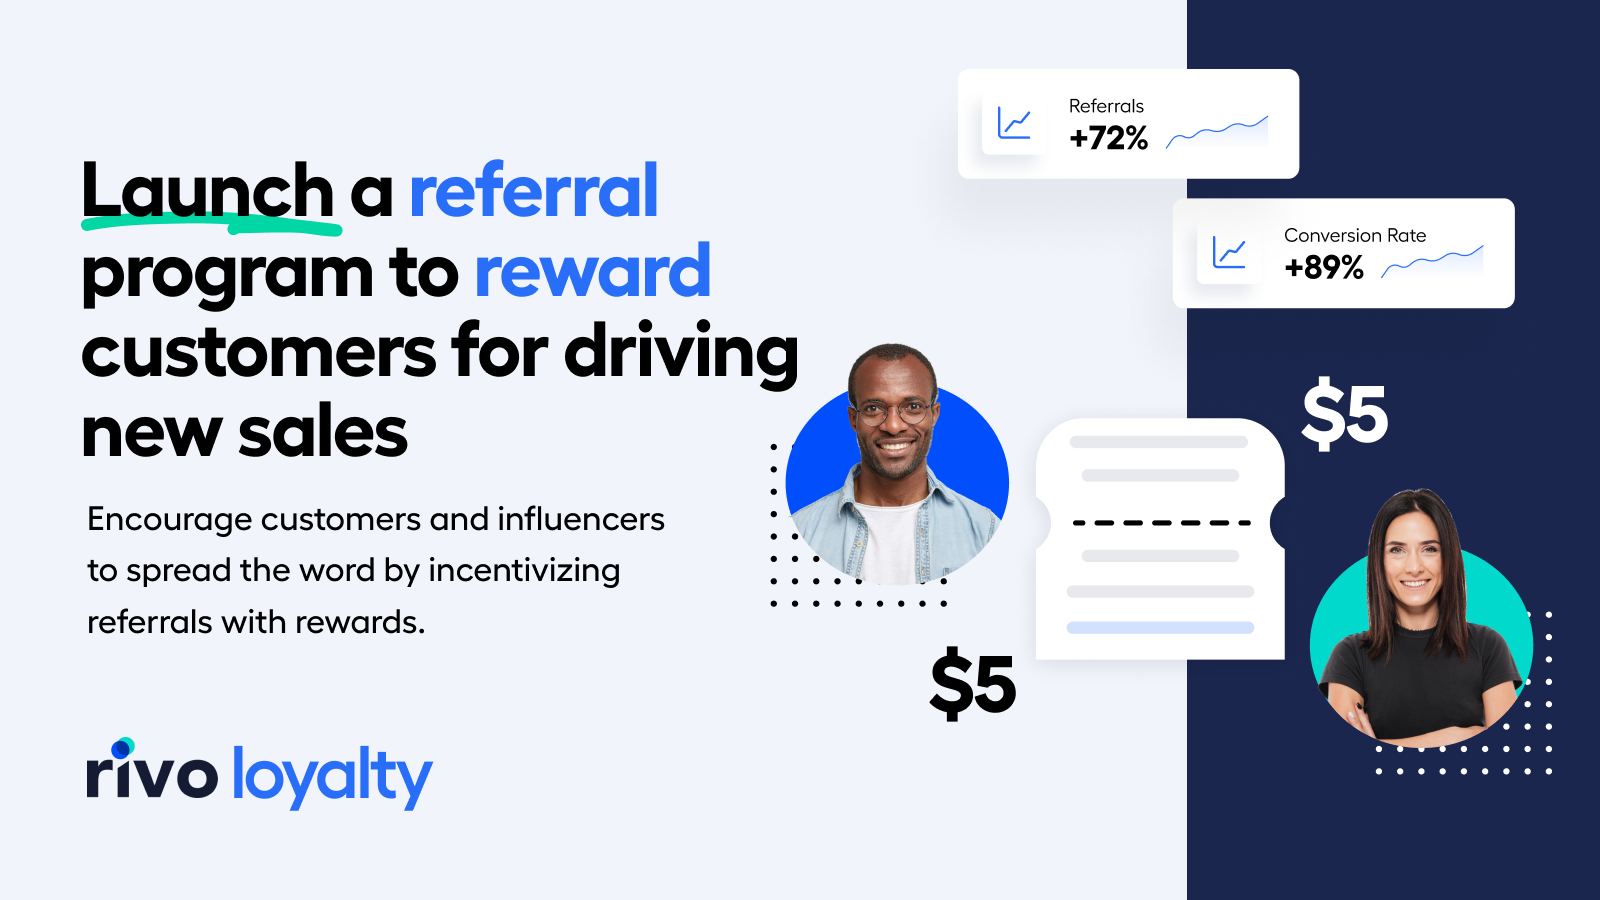 Referral Program to Reward Customers and Influencers